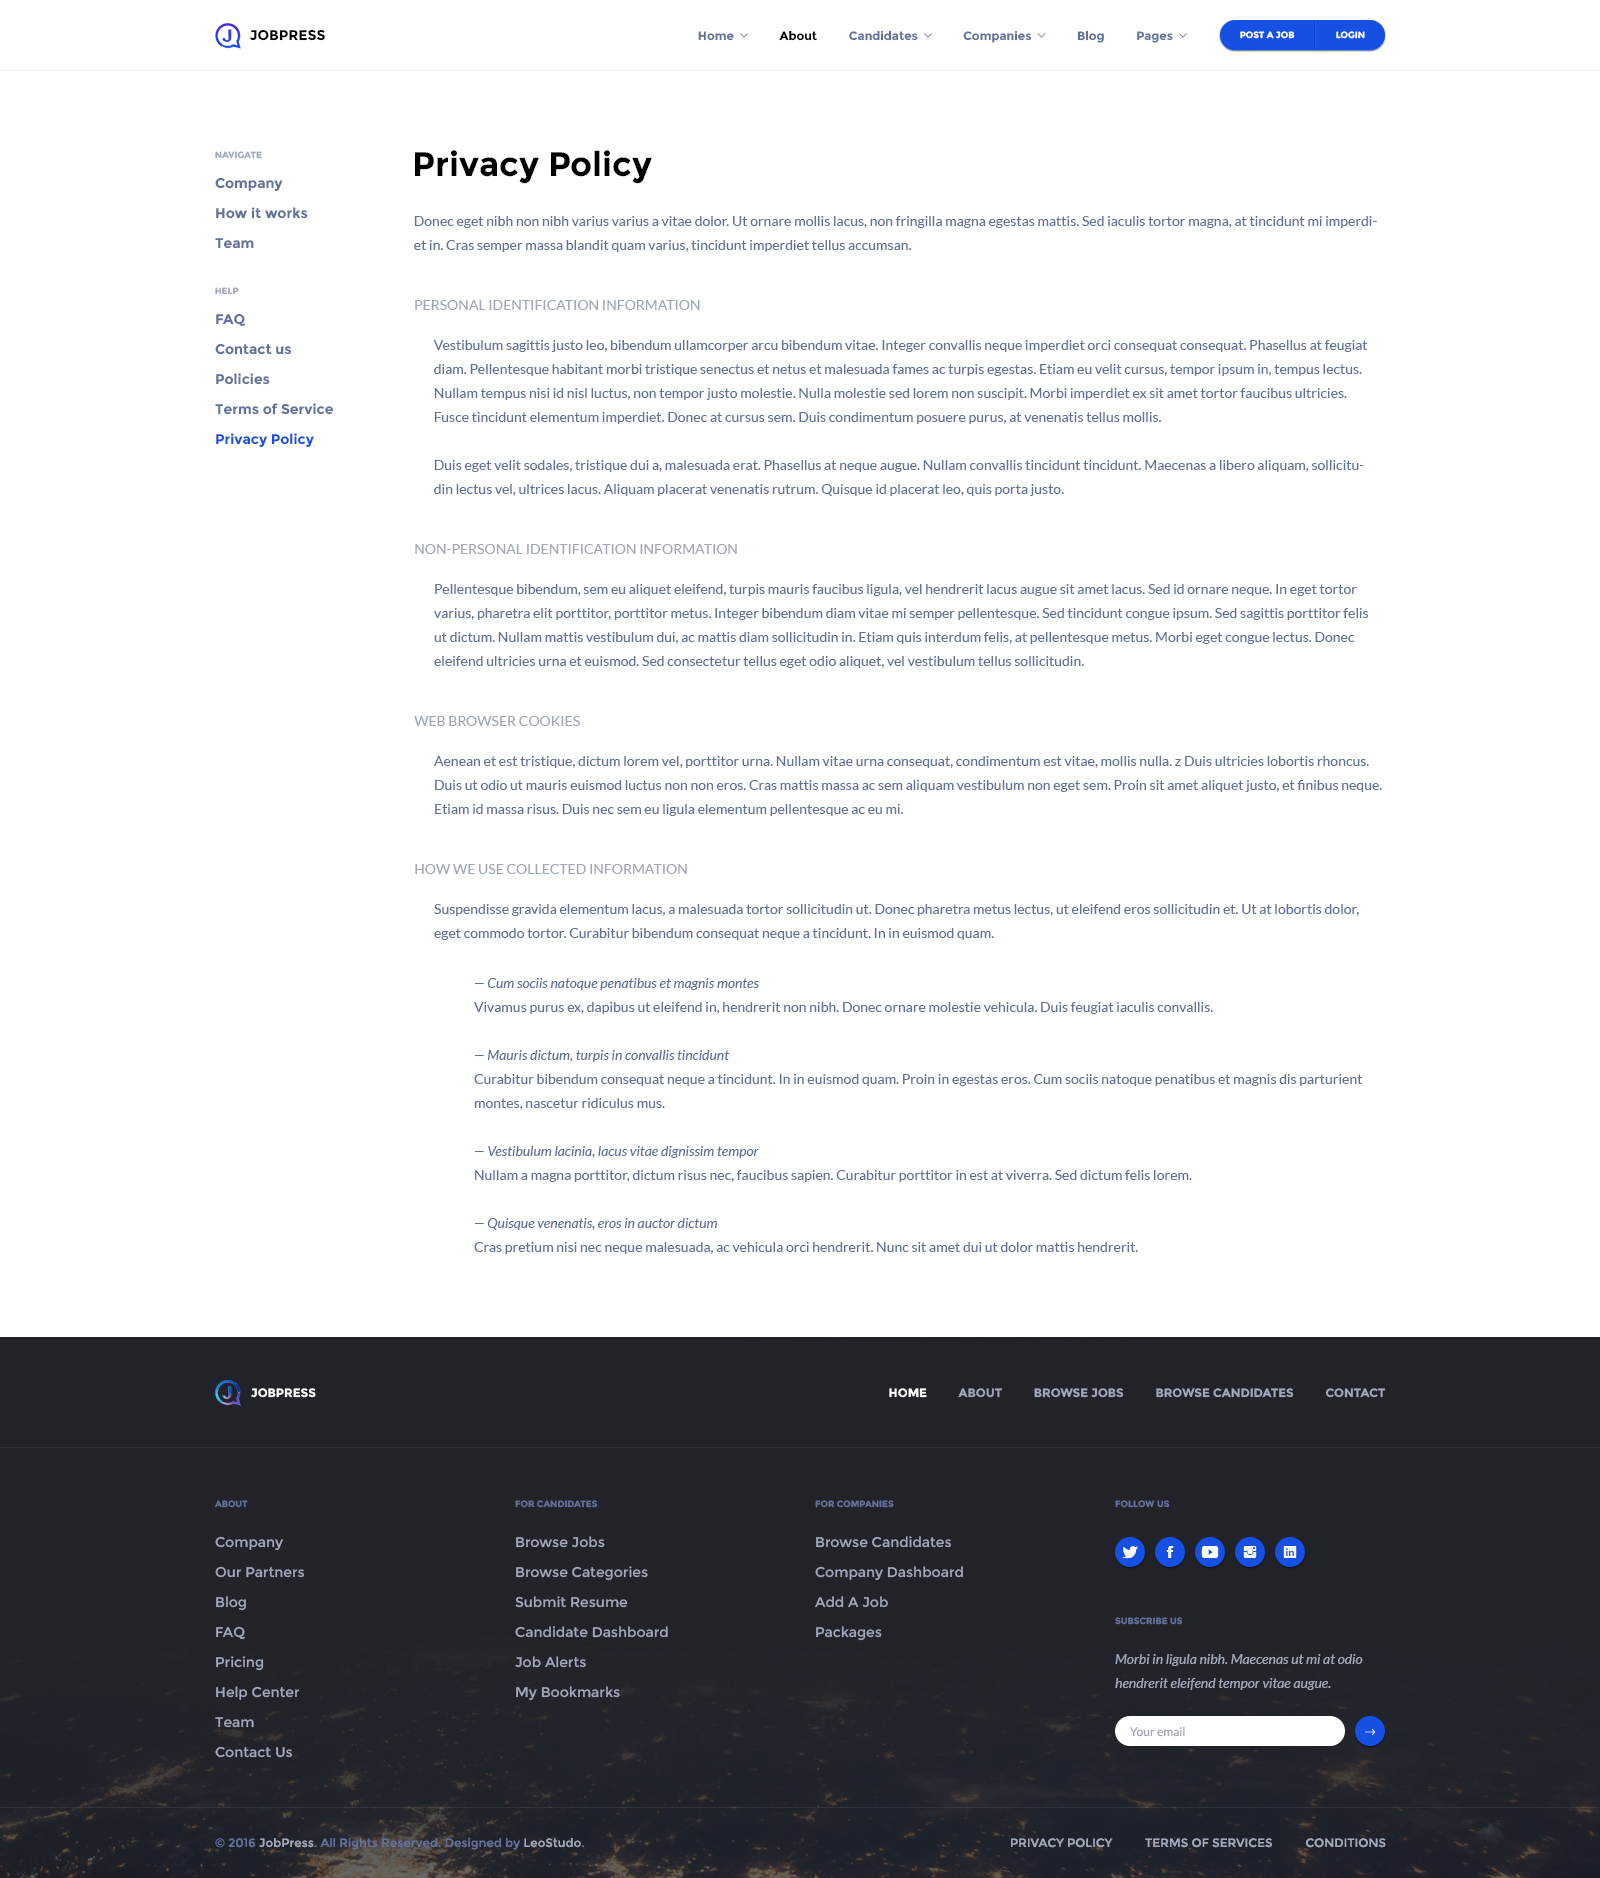 Job Board PSD Template JobPress By Leostudo ThemeForest - Ecommerce website privacy policy template